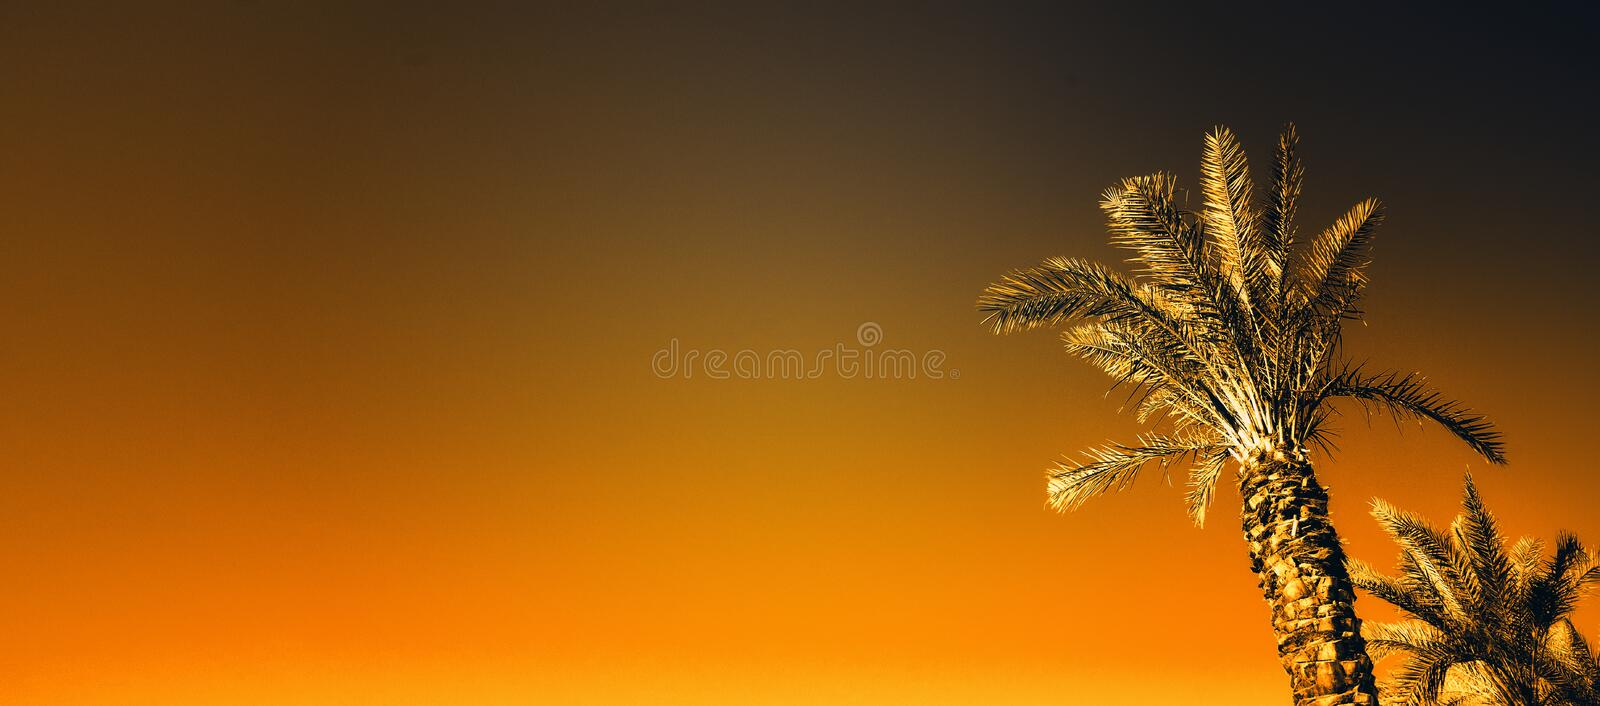 Palms with orange pop art effect. Vintage stylized photo with light leaks. Summer palm trees over sky on beach. Holiday. And travel concept. Copy space. Banner stock images